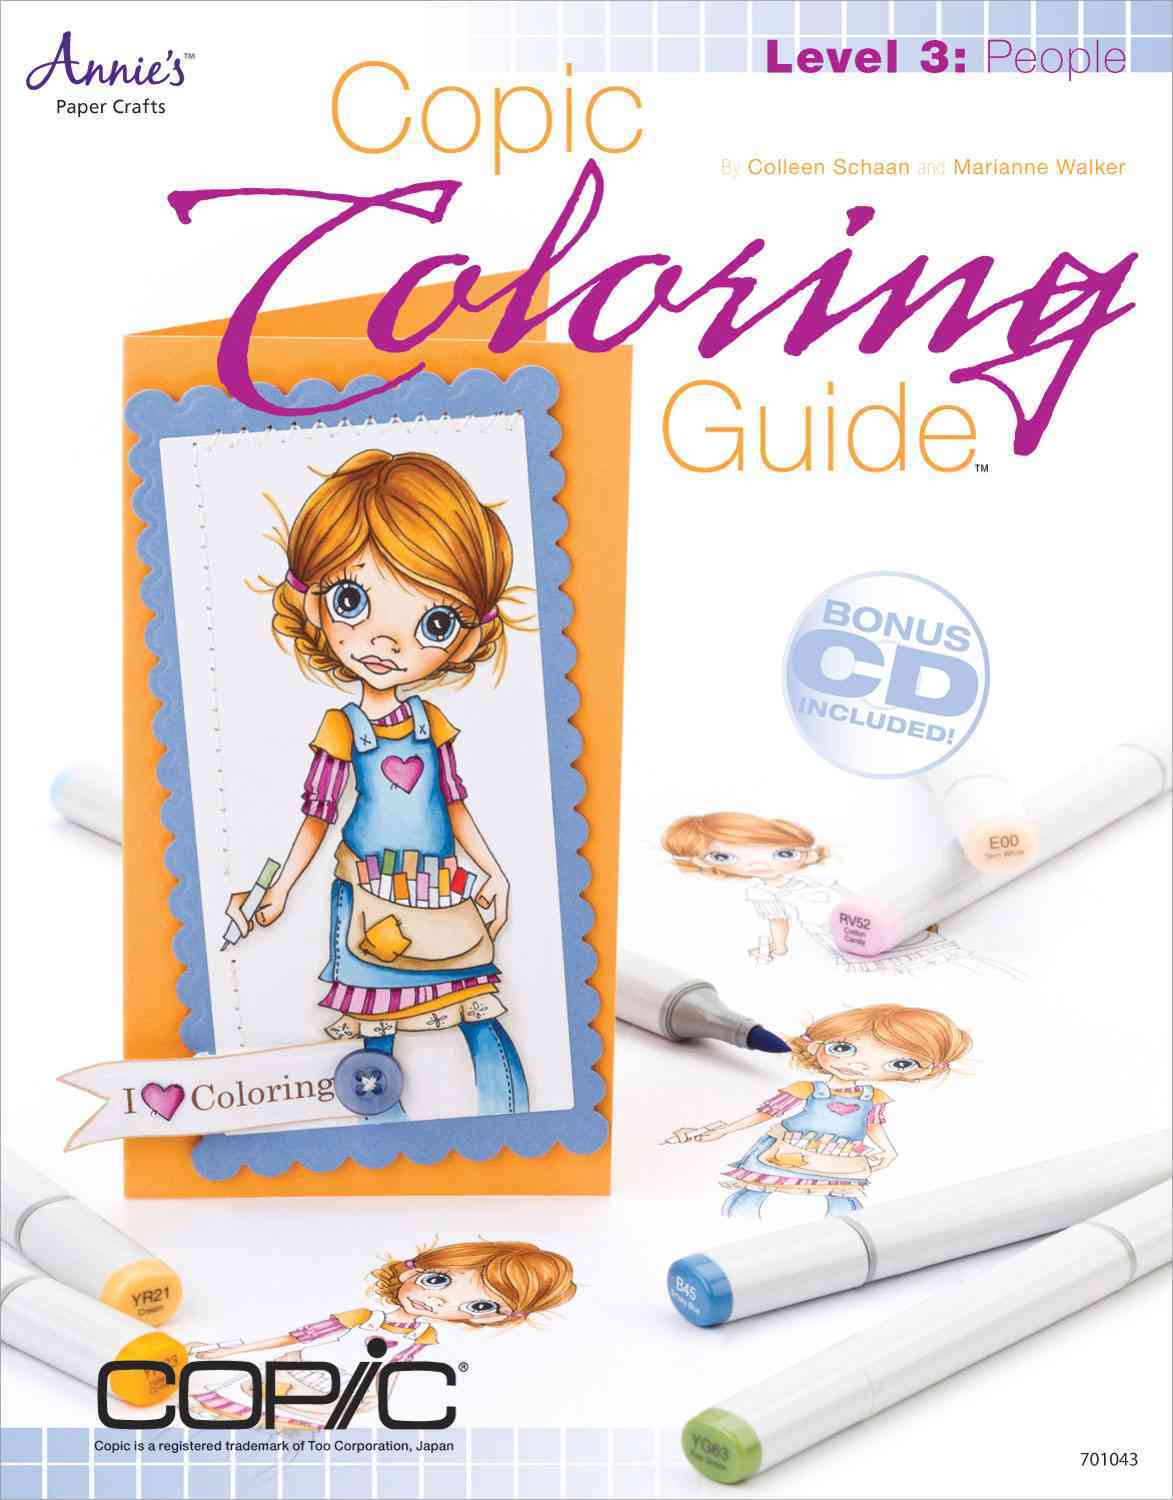 Copic Coloring Guide Level 3 By Schaan, Colleen/ Walker, Marianne